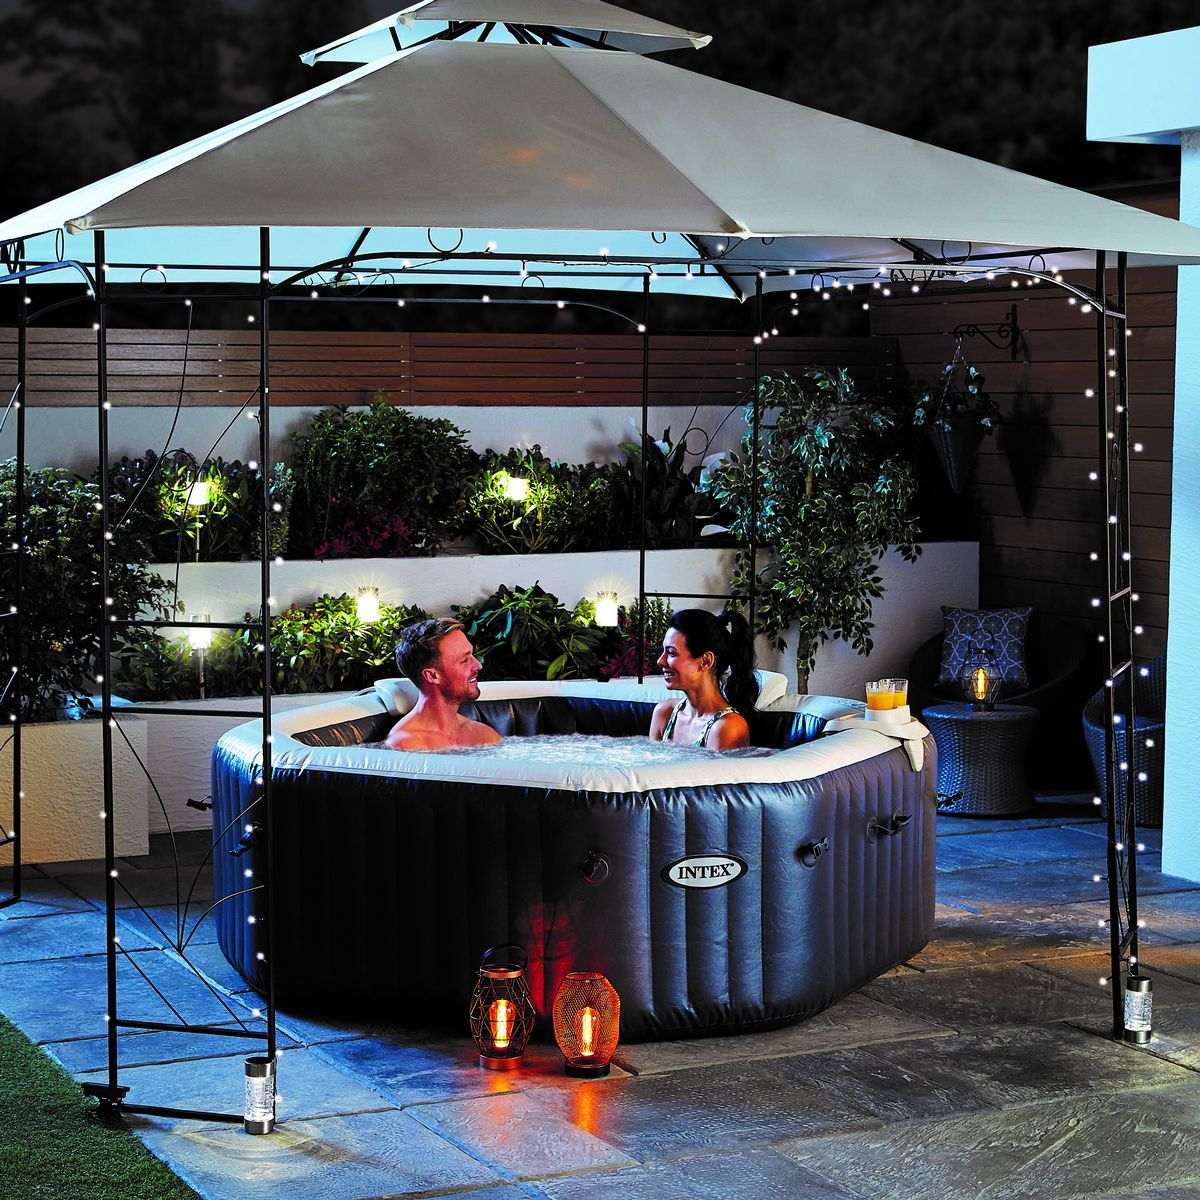 Aldi Launch New Garden Furniture And Barbecue Range And It Includes Sell Out Hot Tub Mirror Online - Garden Furniture Clearance Ireland